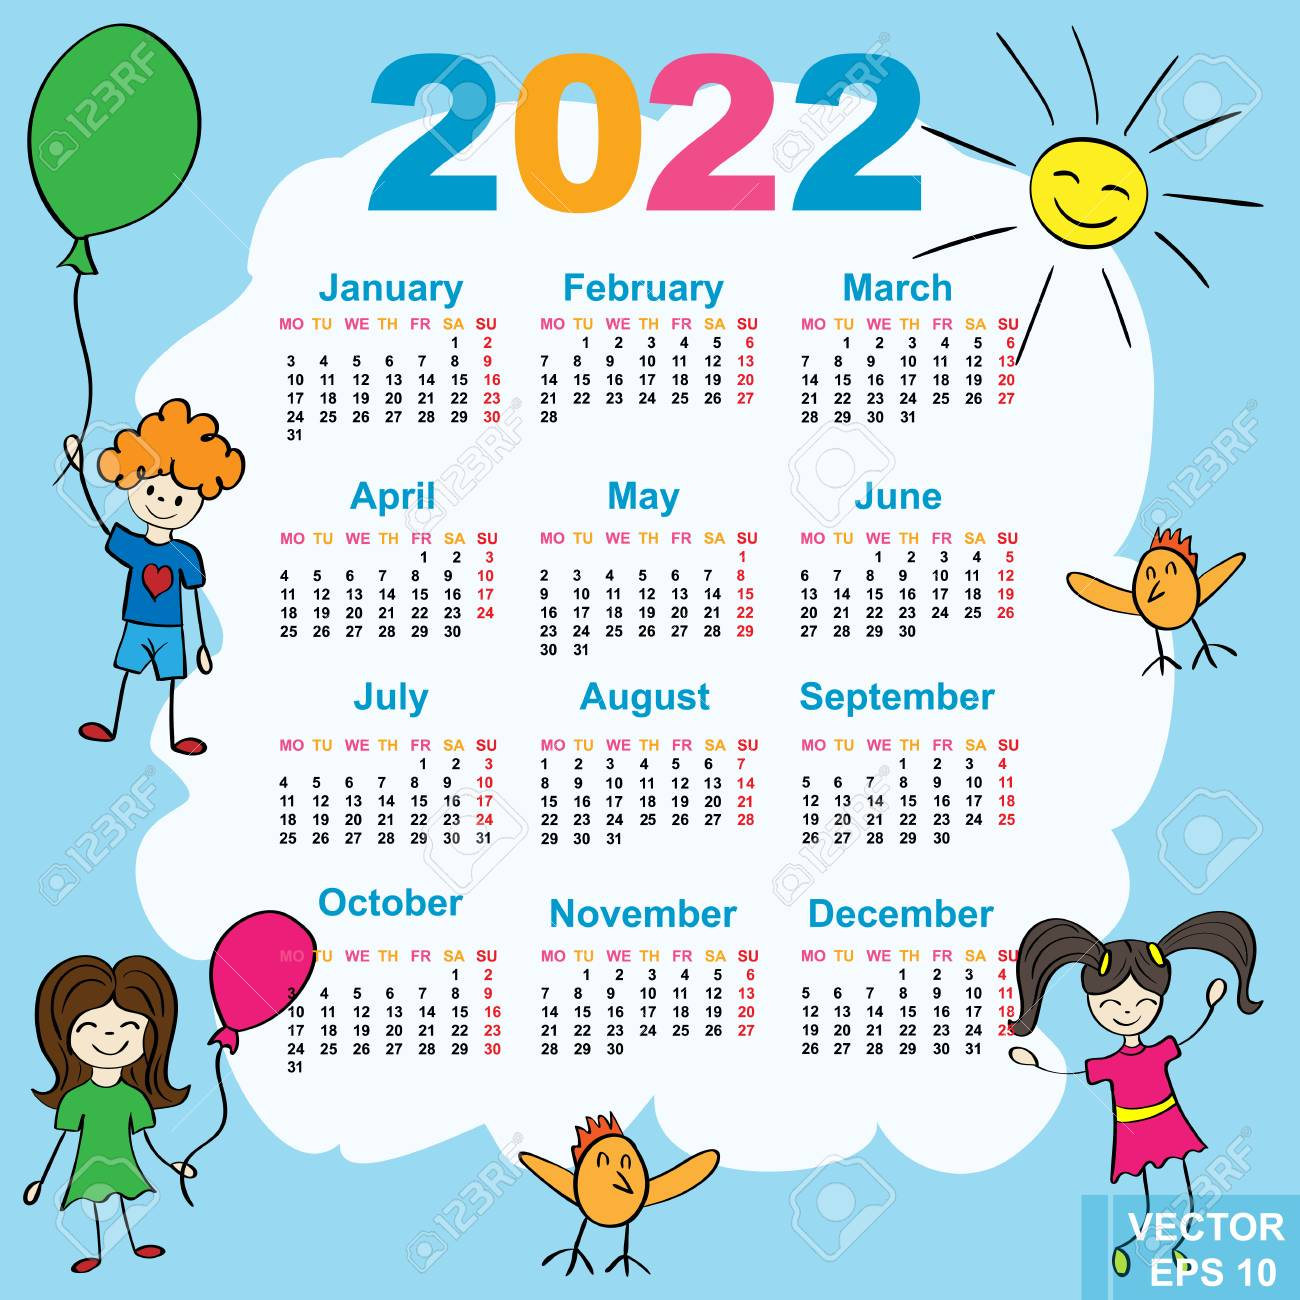 Uw Calendar 2022.The Calendar New Year 2022 Date For Your Design Royalty Free Cliparts Vectors And Stock Illustration Image 71737516